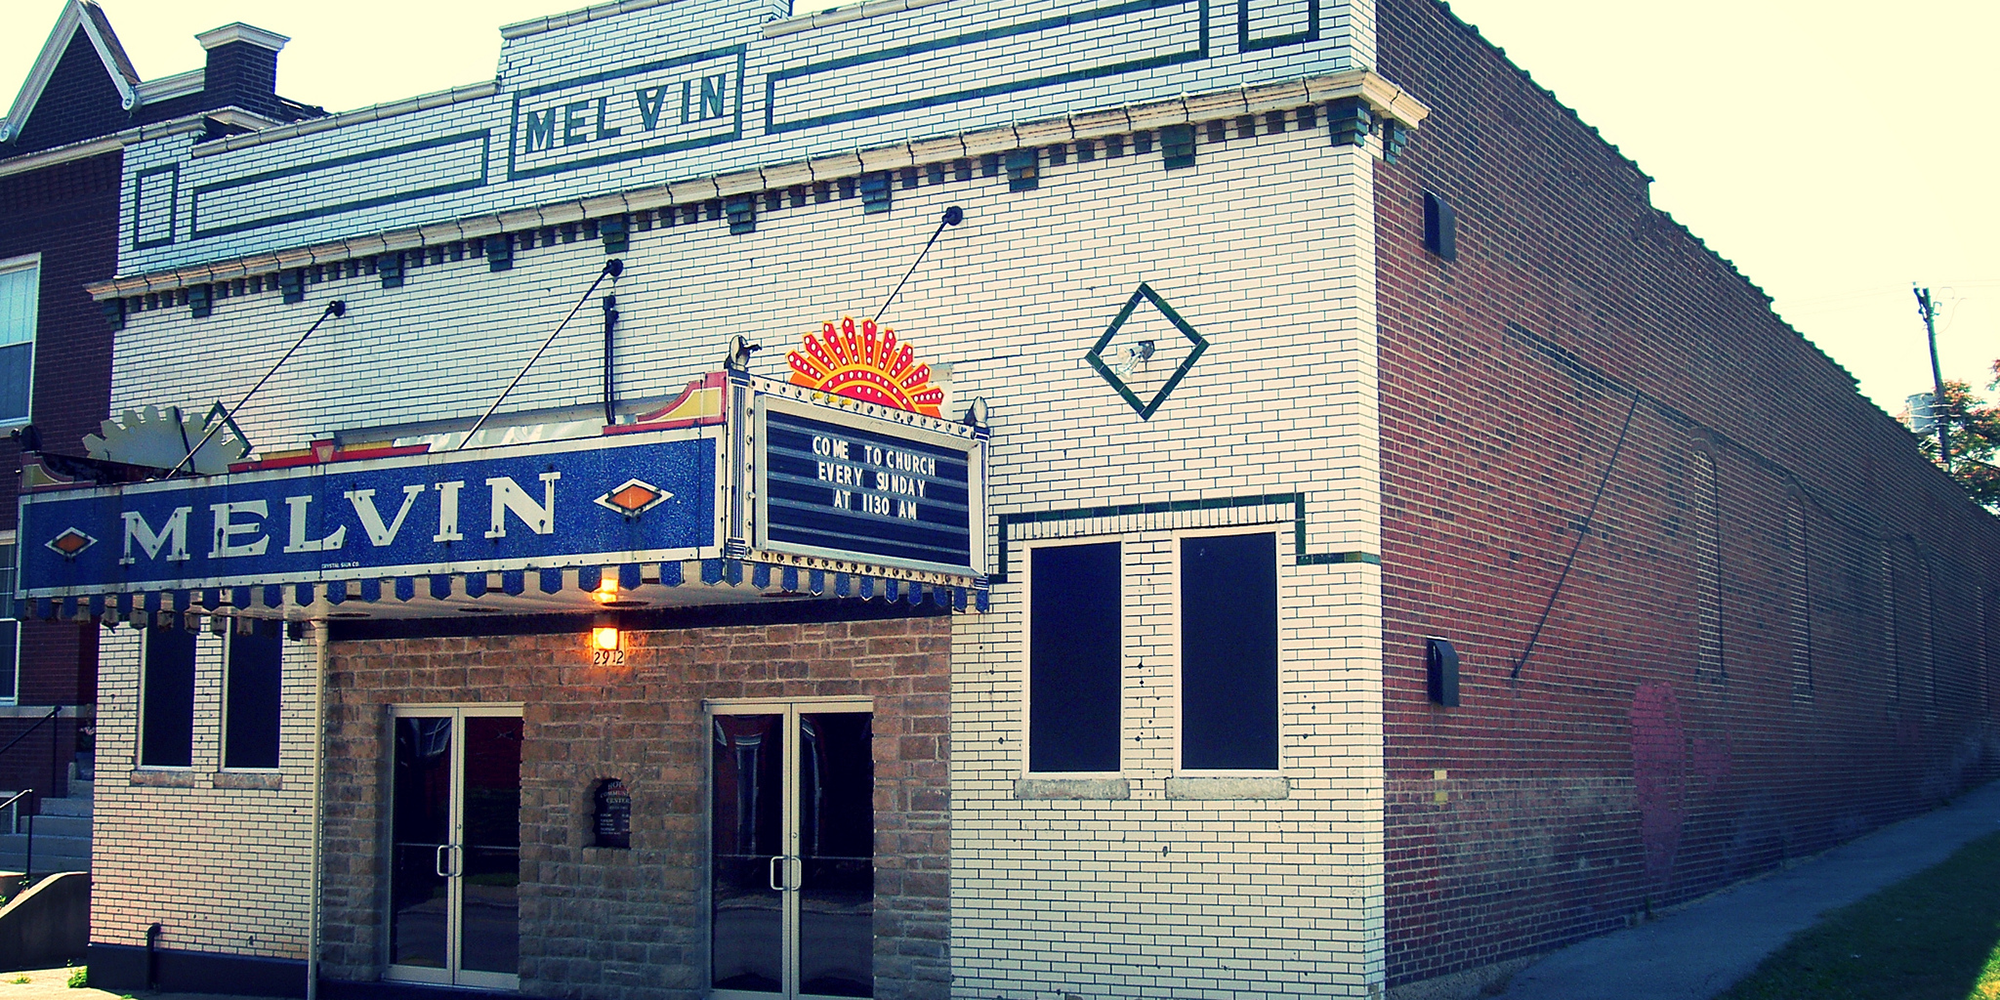 The former Melvin Theater on Chippewa Street in Dutchtown, St. Louis. Photo by Tom Lampe.